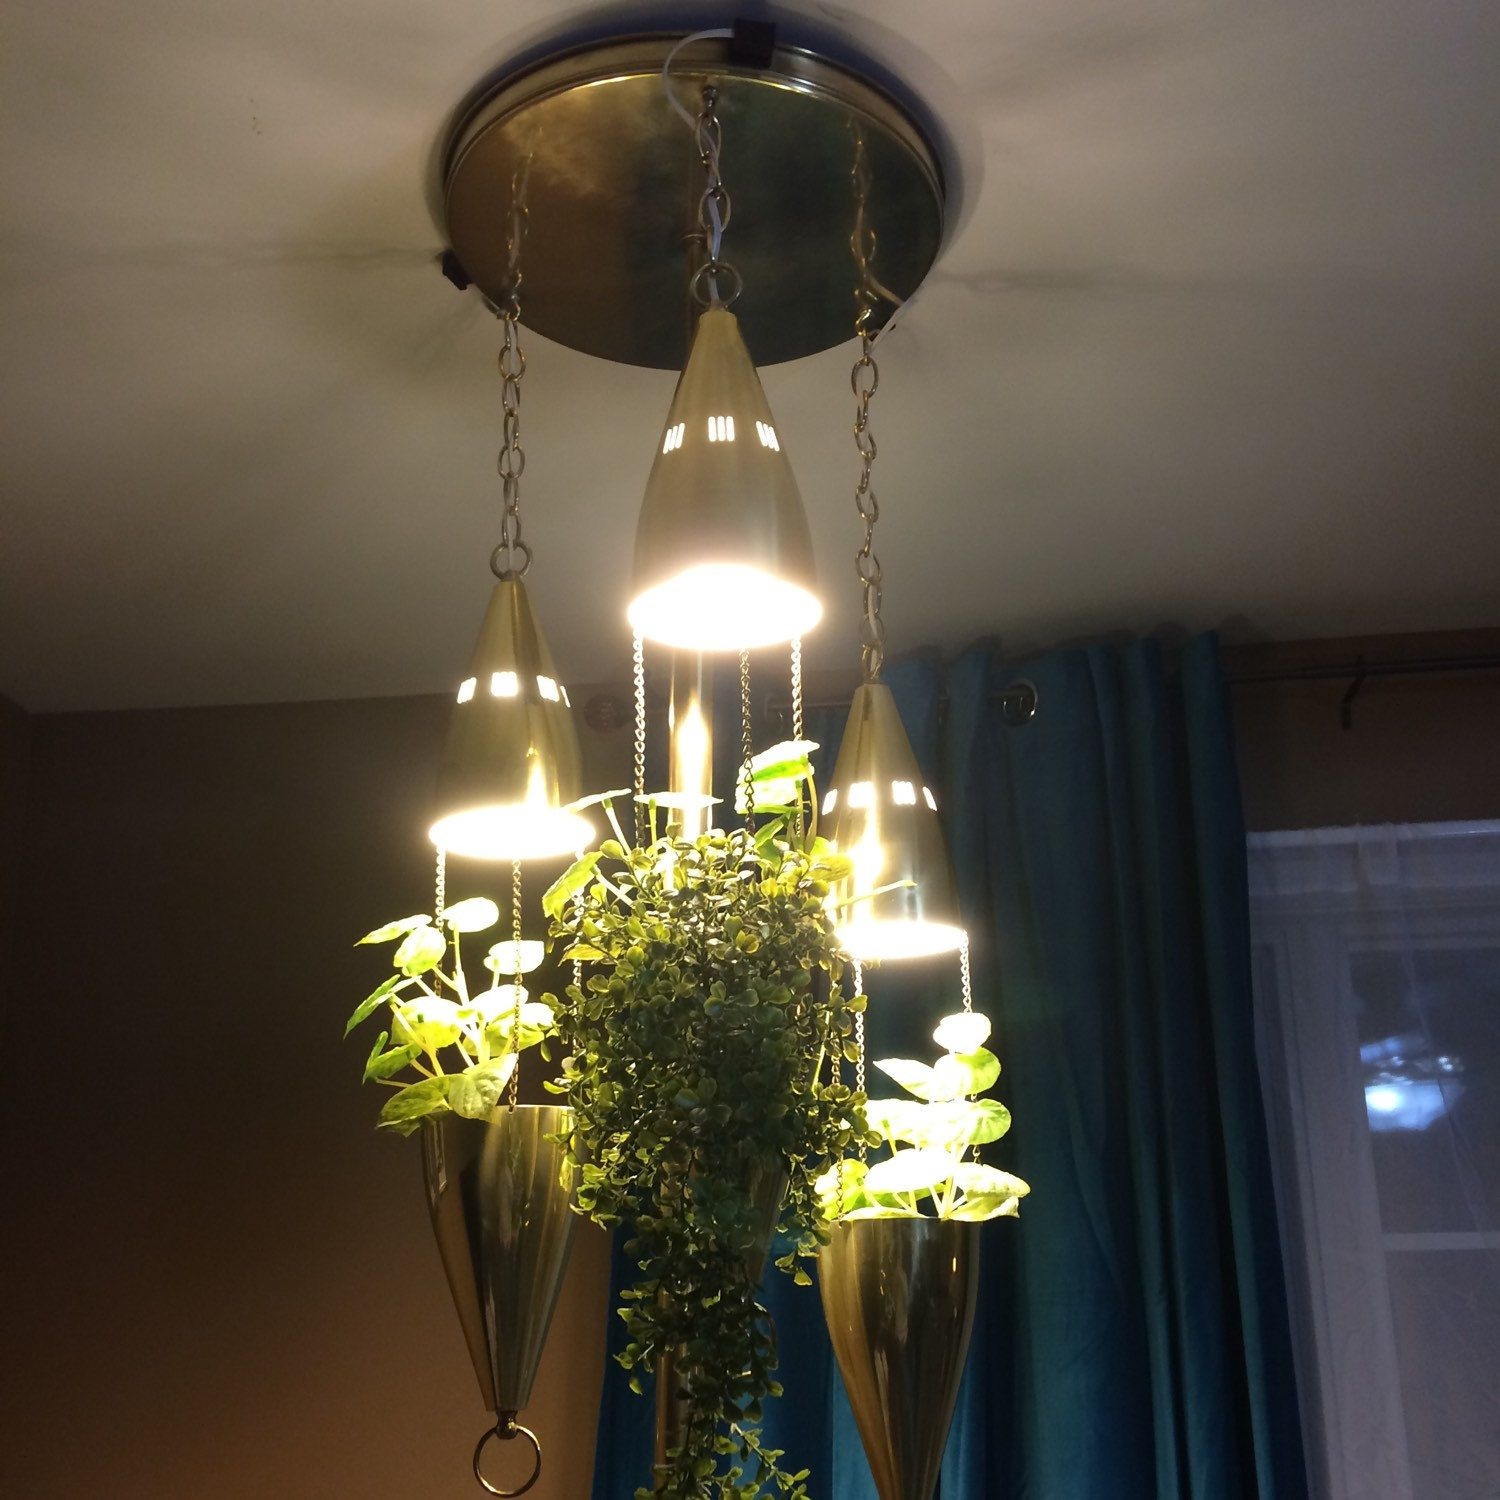 medium resolution of the most amazing tension pole lamp you will ever see brass finish polished new wiring and sockets new switch hanging lights feature bullet planter and